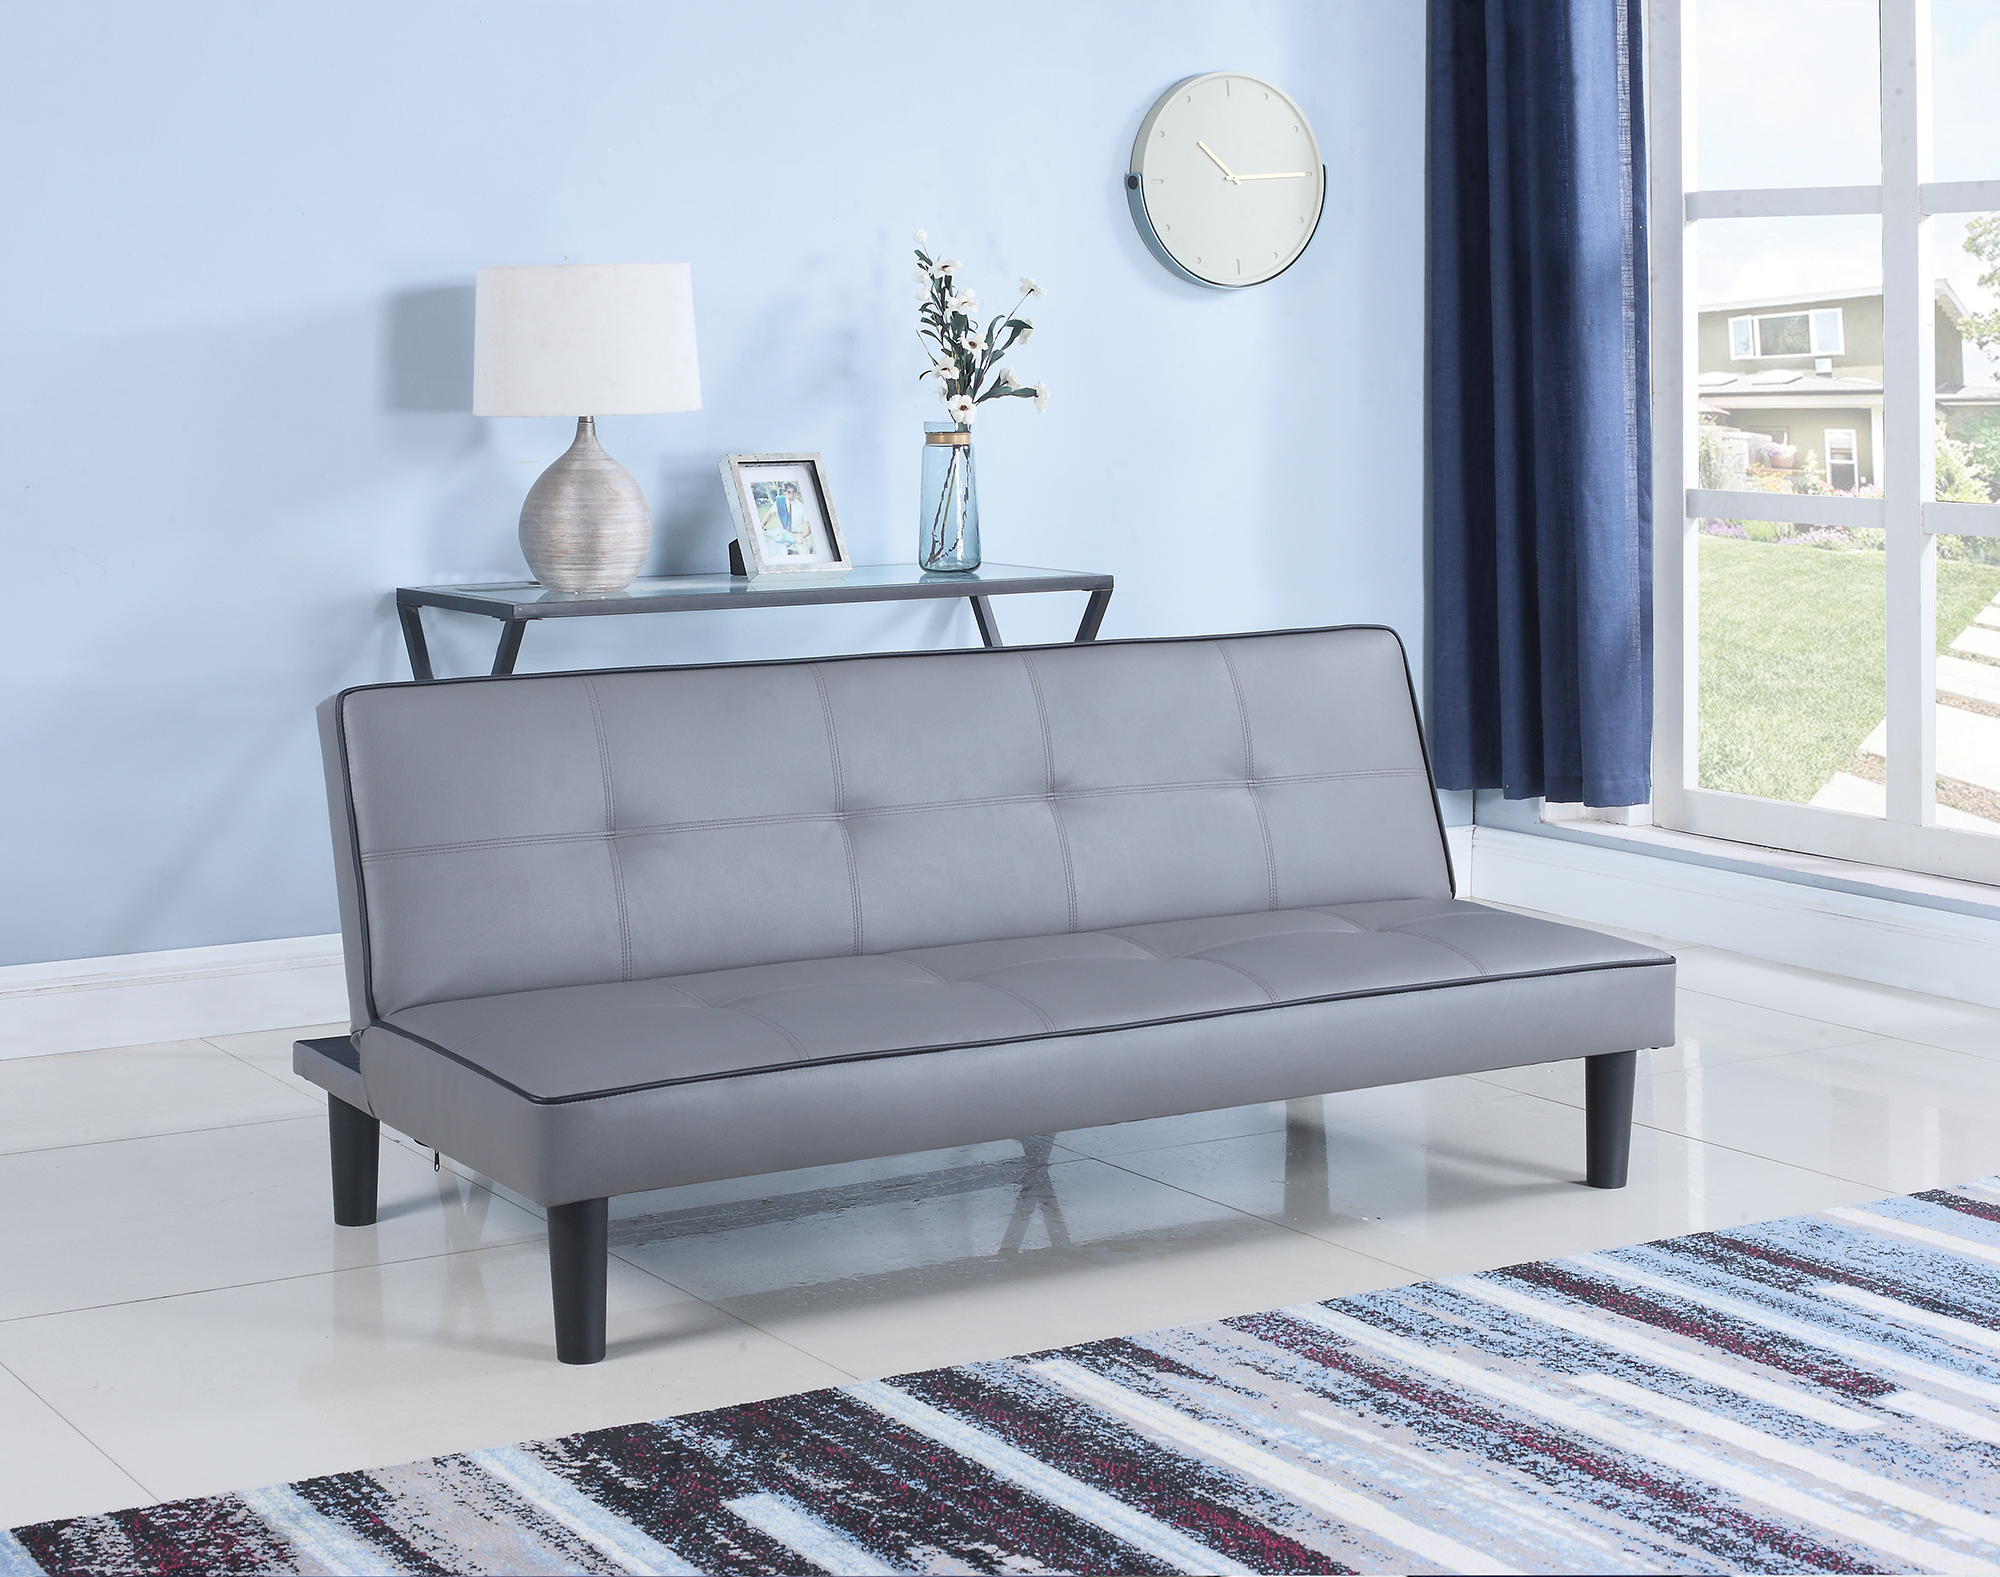 Ebay Sofa Grey Details About Coaster Fabric Sofa Bed With Dark Grey Finish 500415